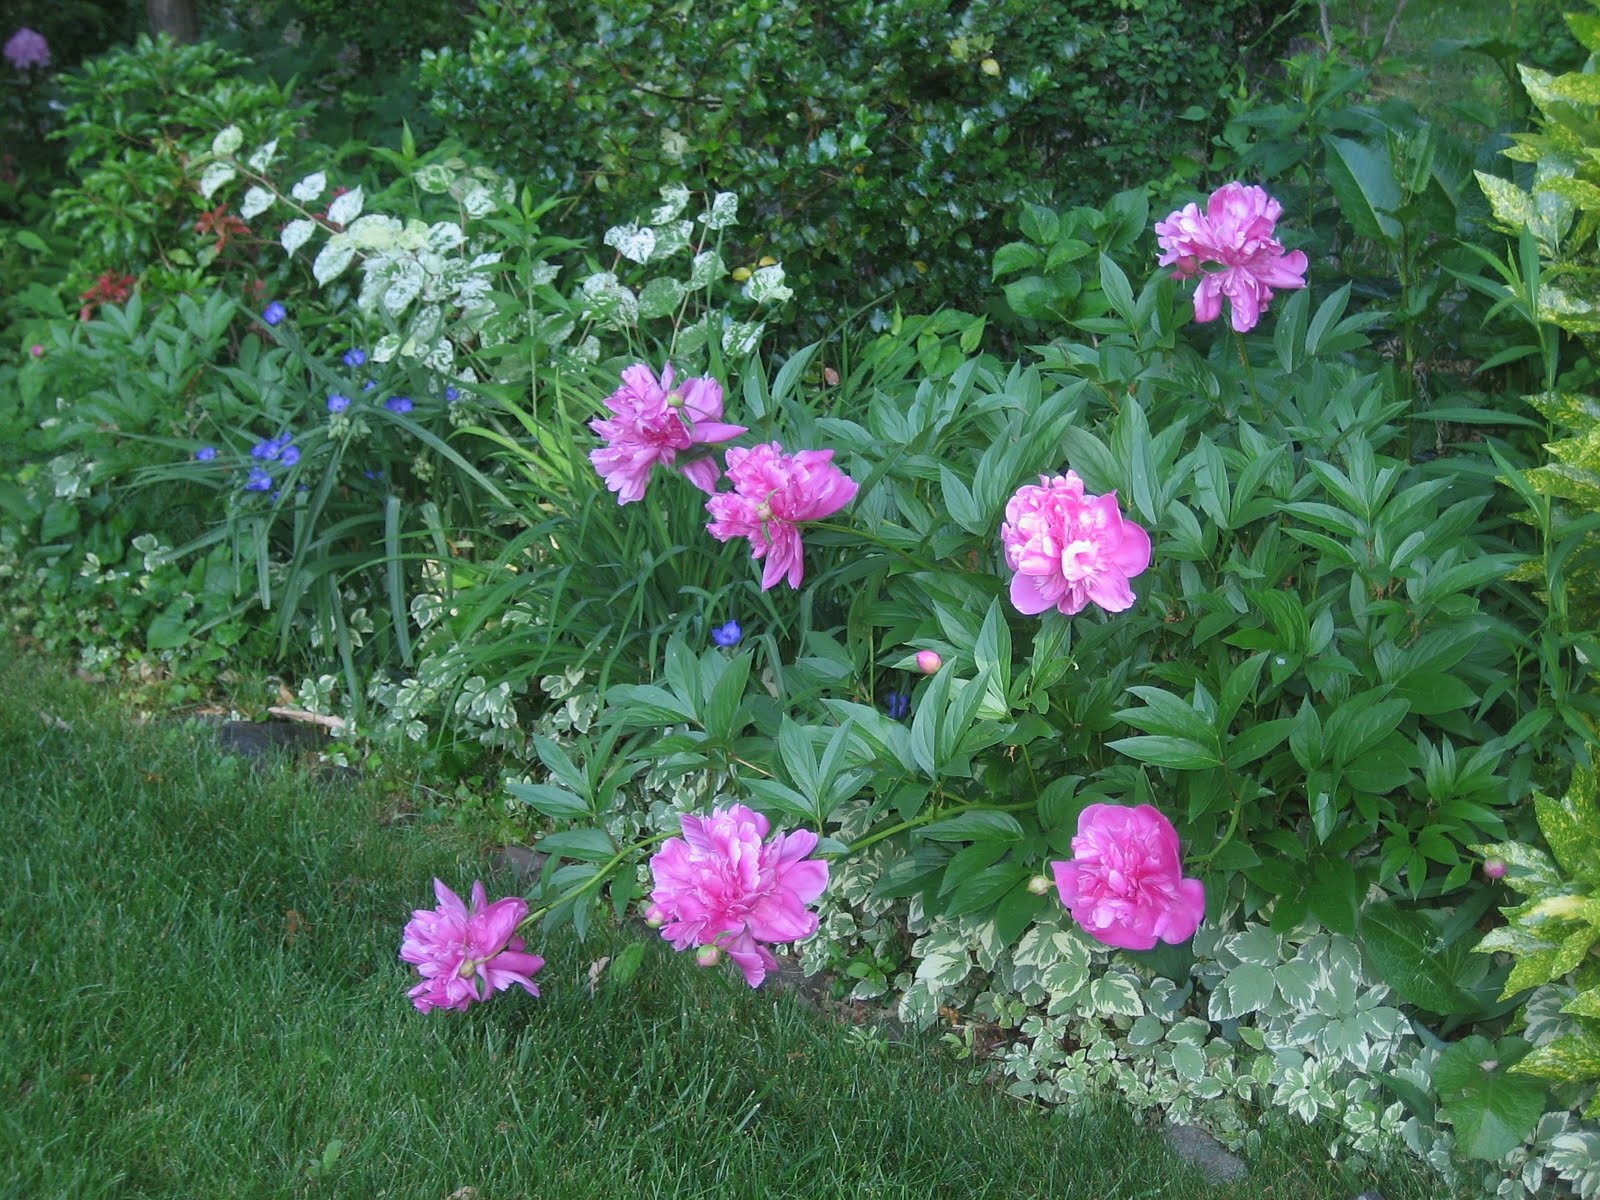 Most beautiful english gardens - Peonies Are One Of The Most Beautiful Flowers On Earth They May Be A Favorite In English Gardens But Certainly A Favorite In My Informal Garden